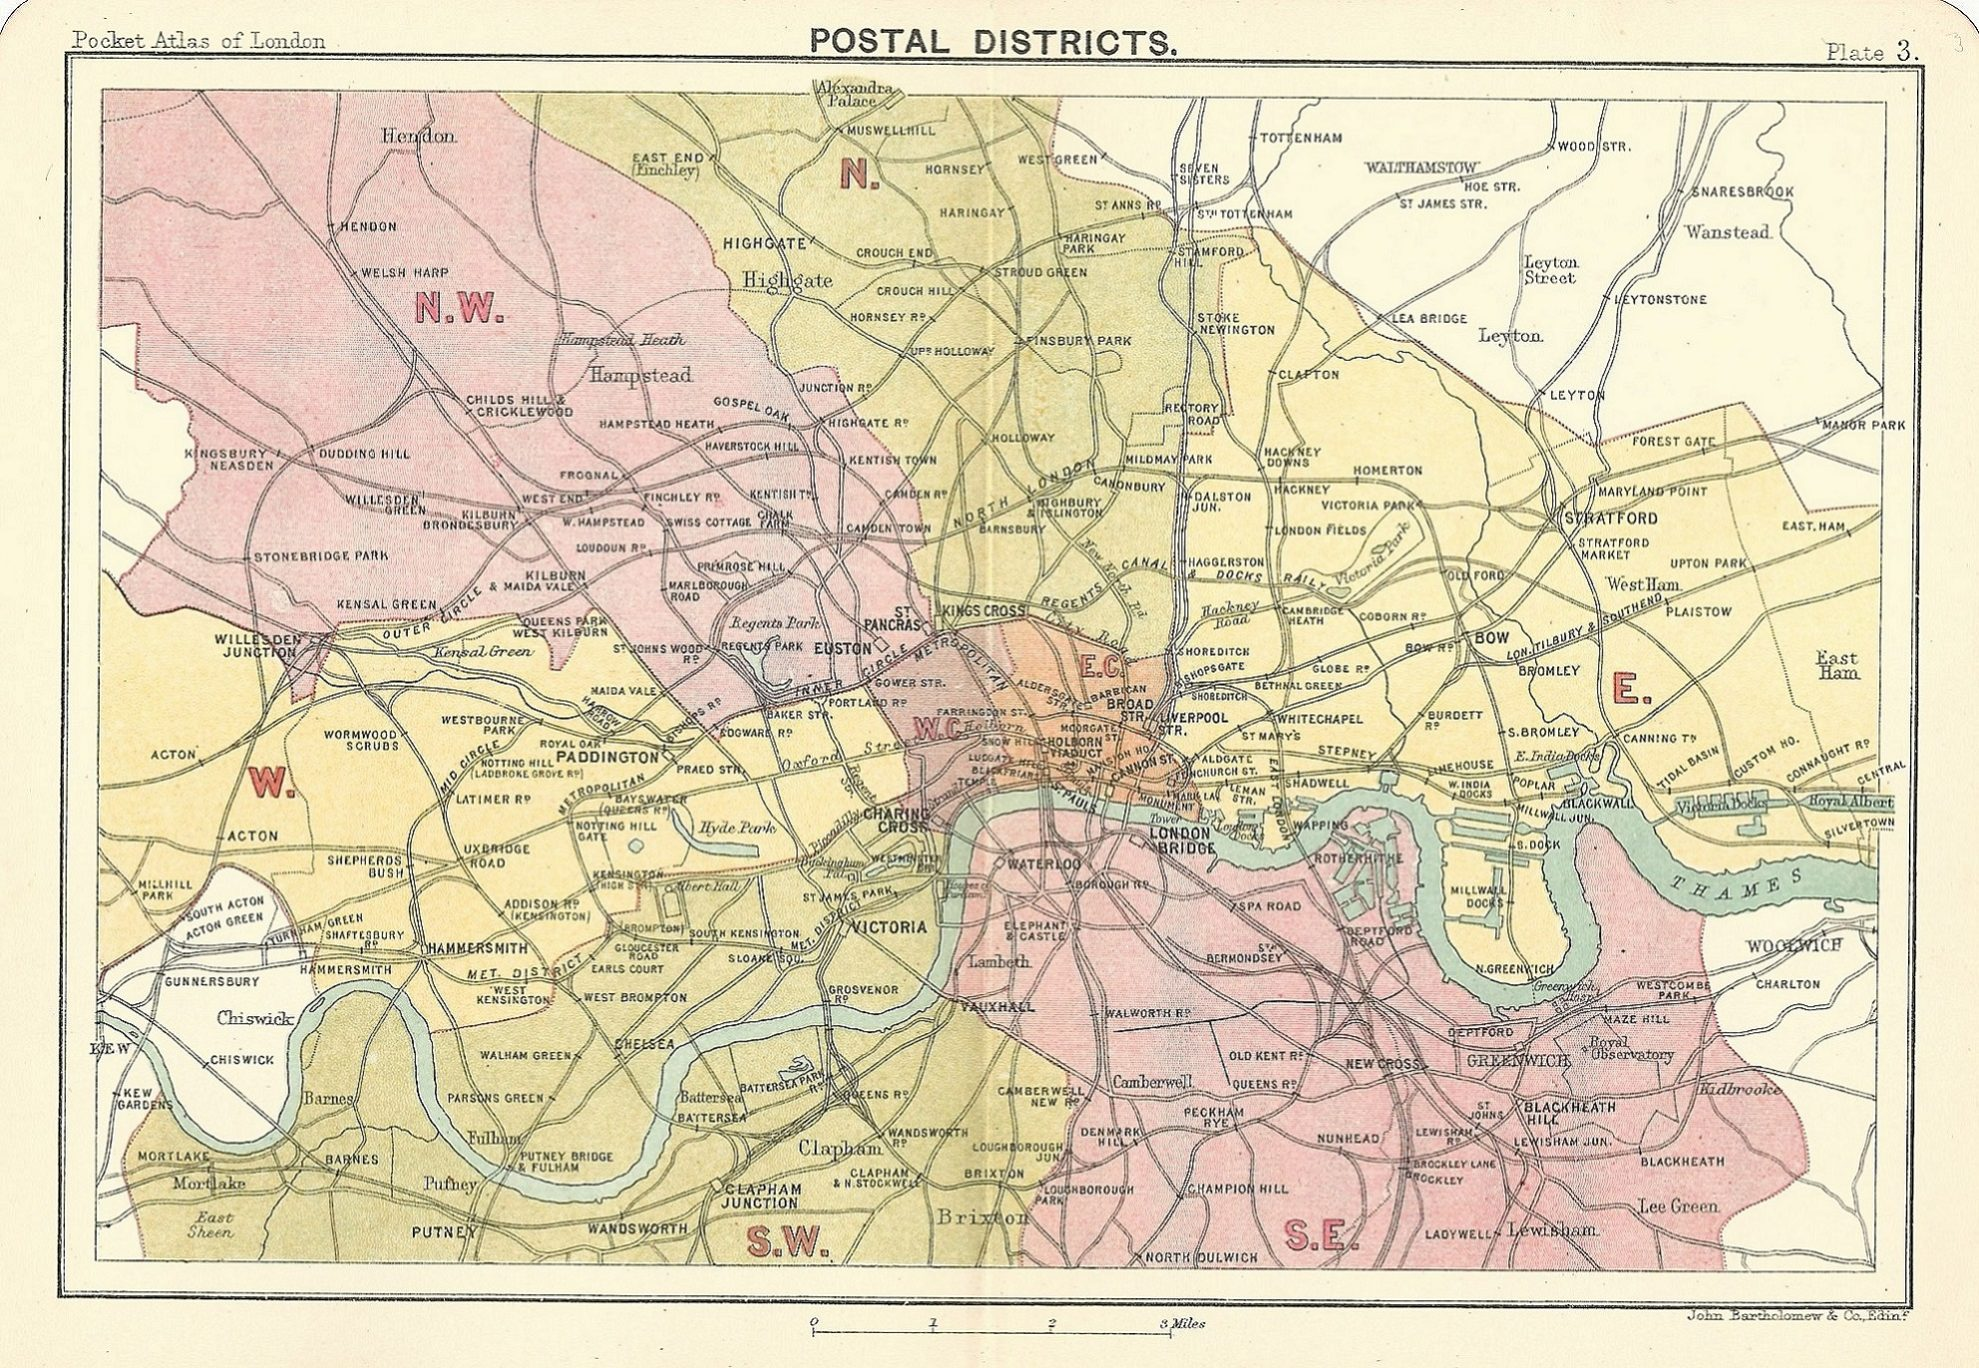 London Map Districts.Postal District Map Of London John Bartholomew 1891 Frontispiece